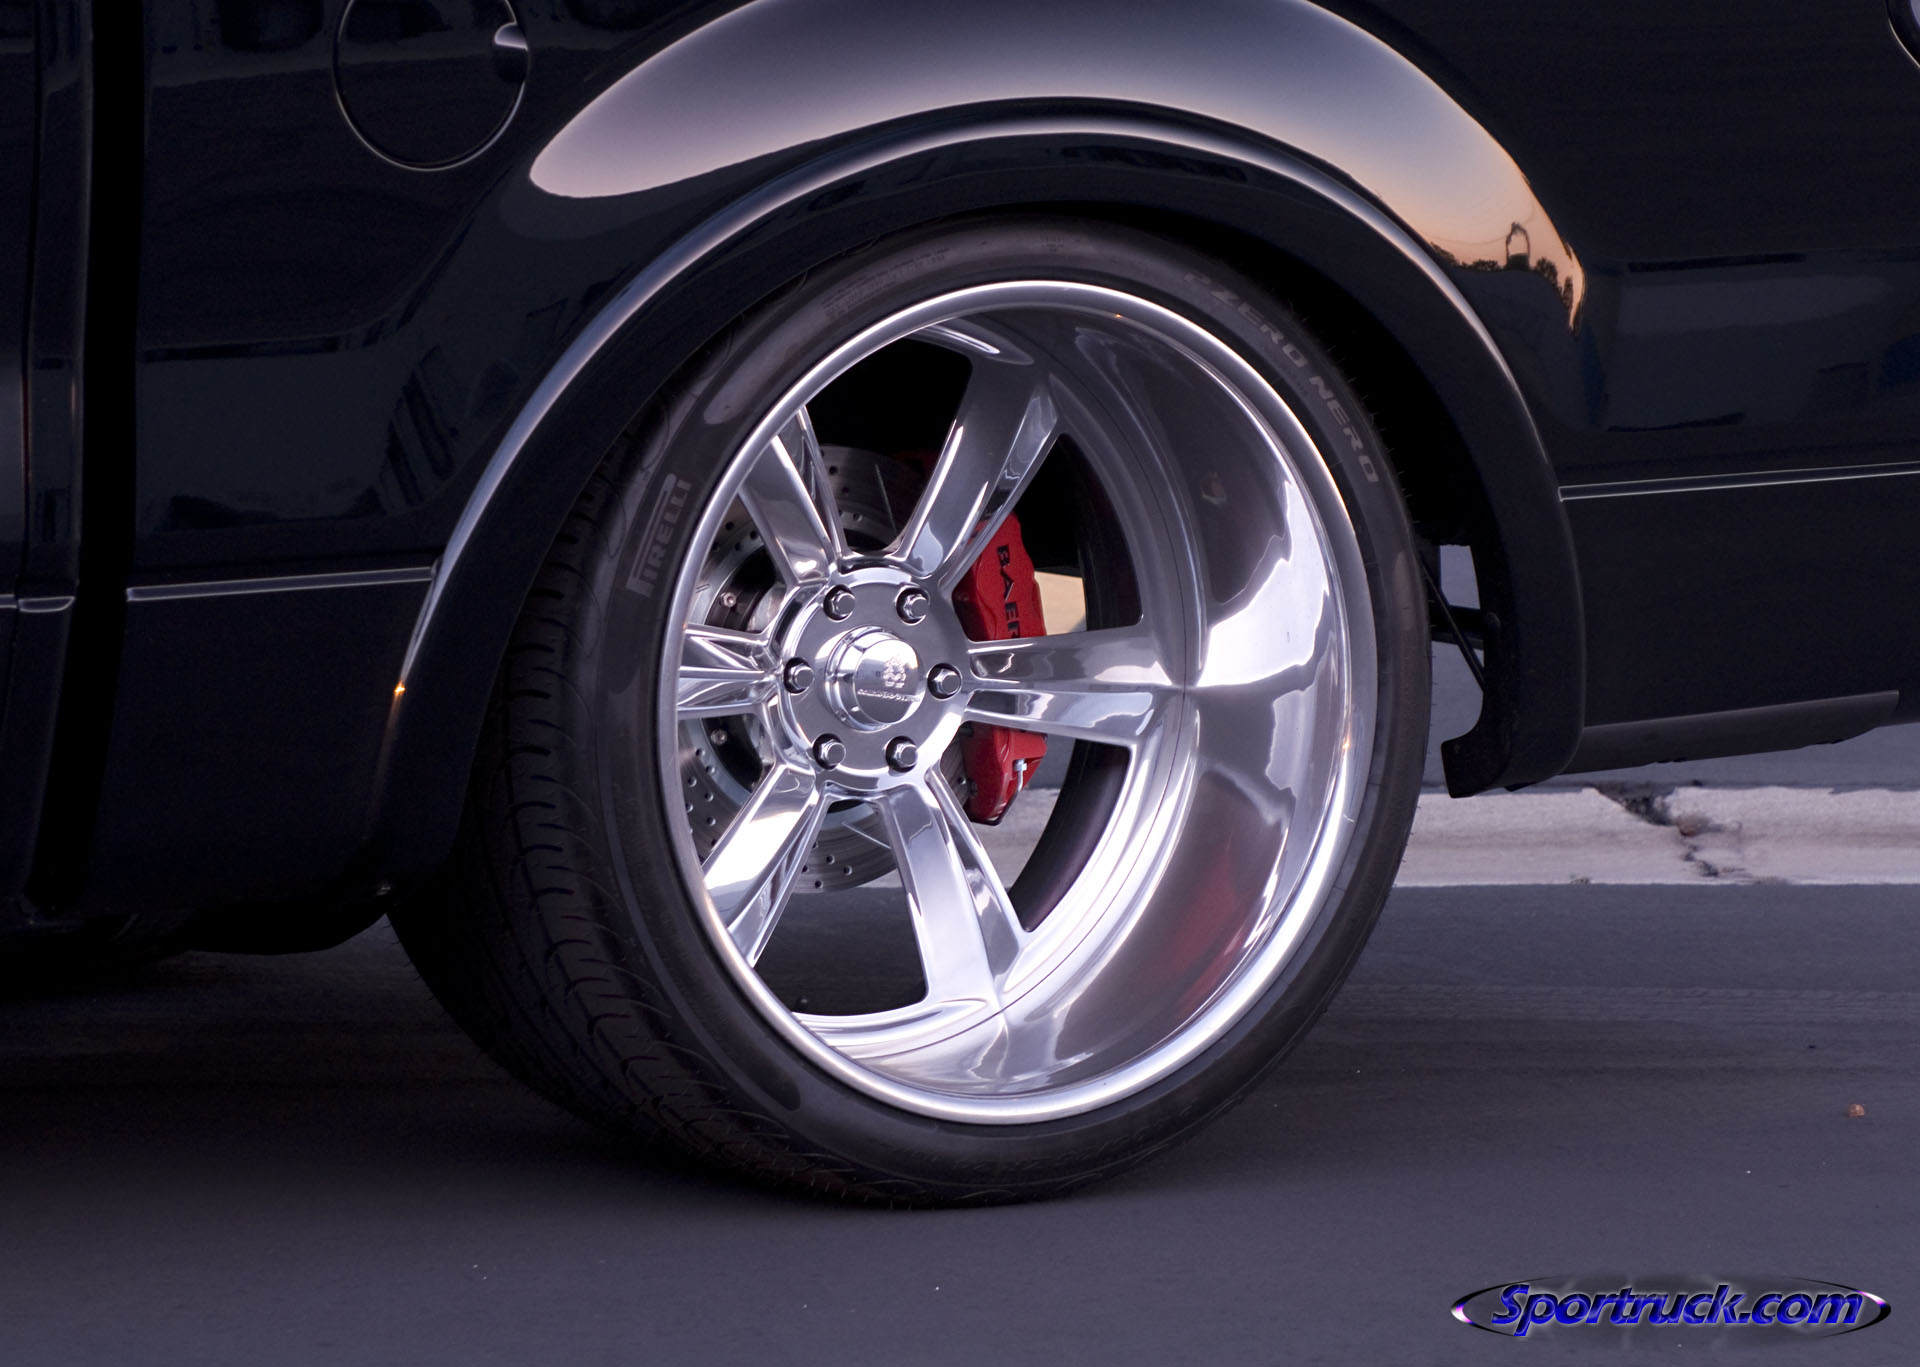 Ford F 150 Wheels >> Tarmac Ford F-150 - Casey Scranton - CGS Performance Products - Feature Truck - Sportruck.com